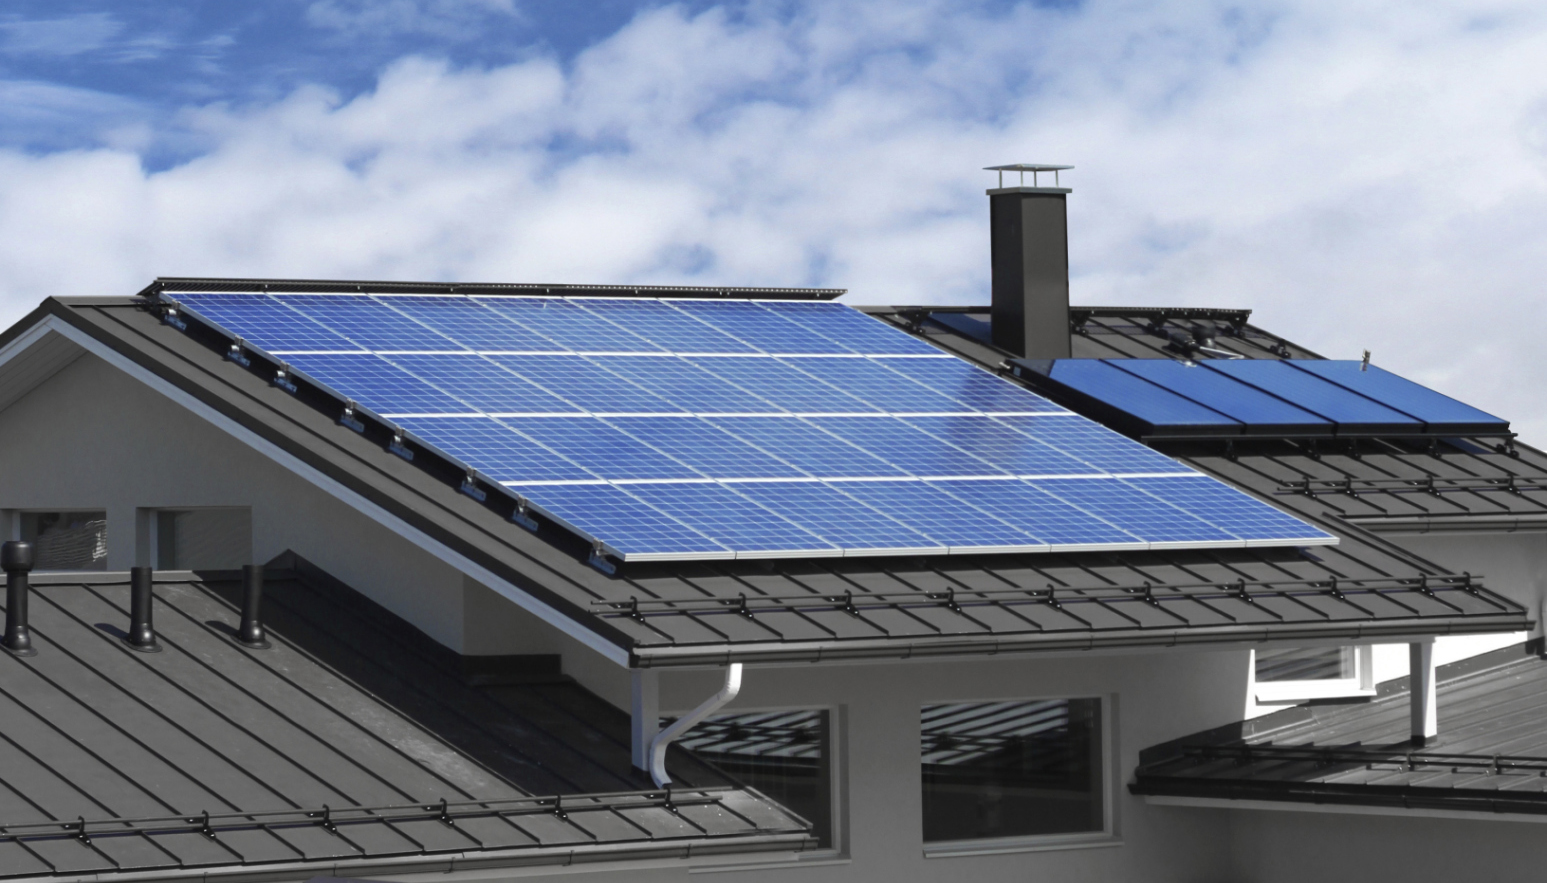 Benefits of Having Solar Panels on Your Roof